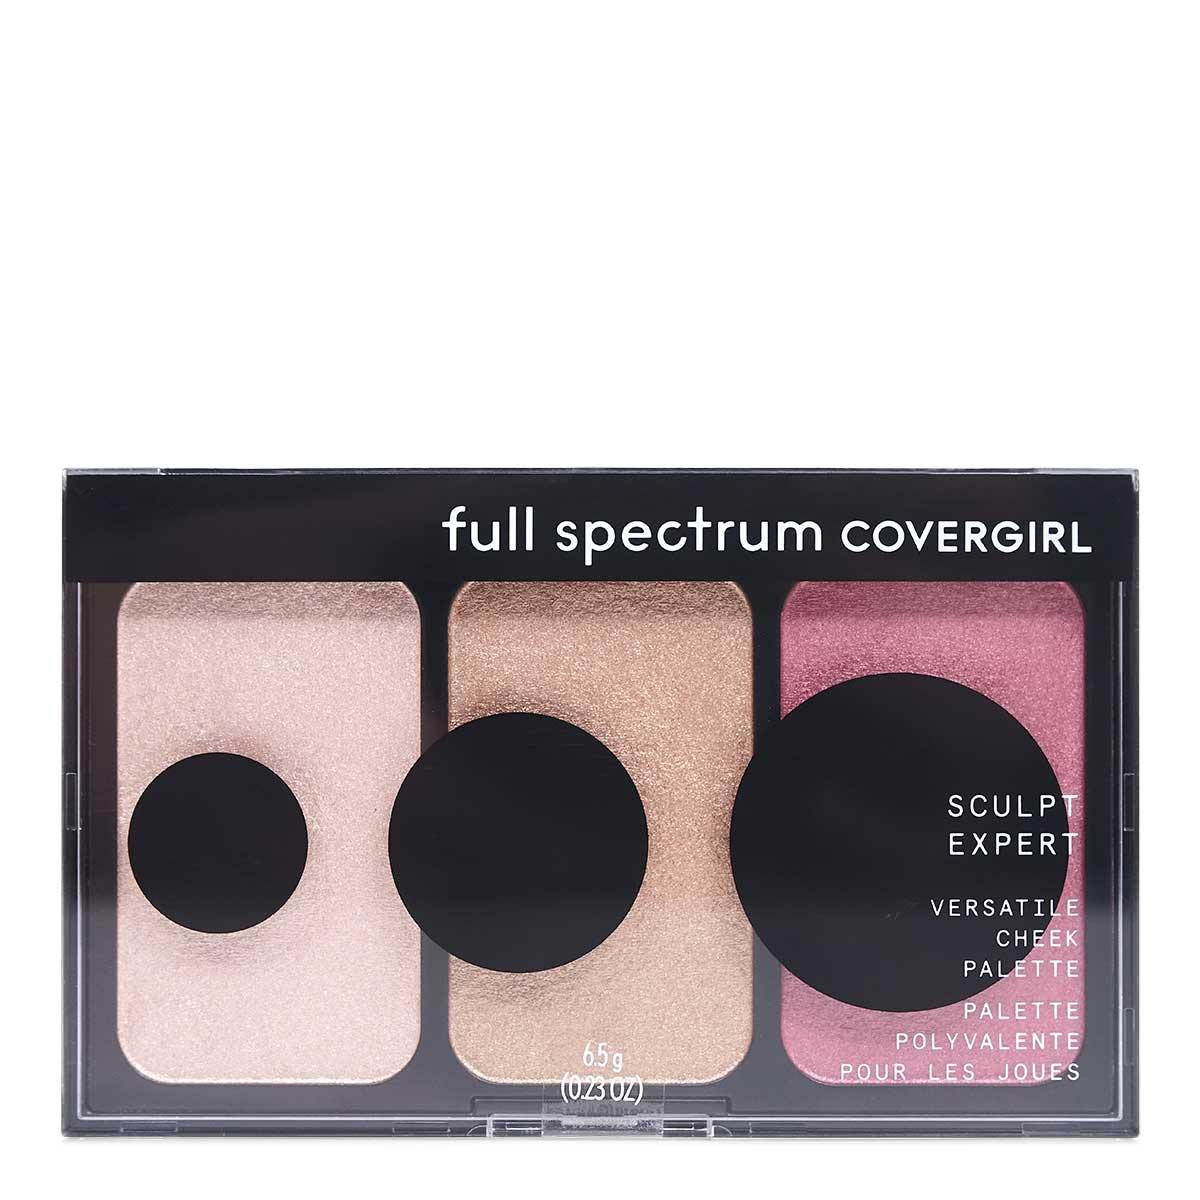 COVERGIRL FULL SPECTRIUM SCULTPING PALETTE - Case of 24 units